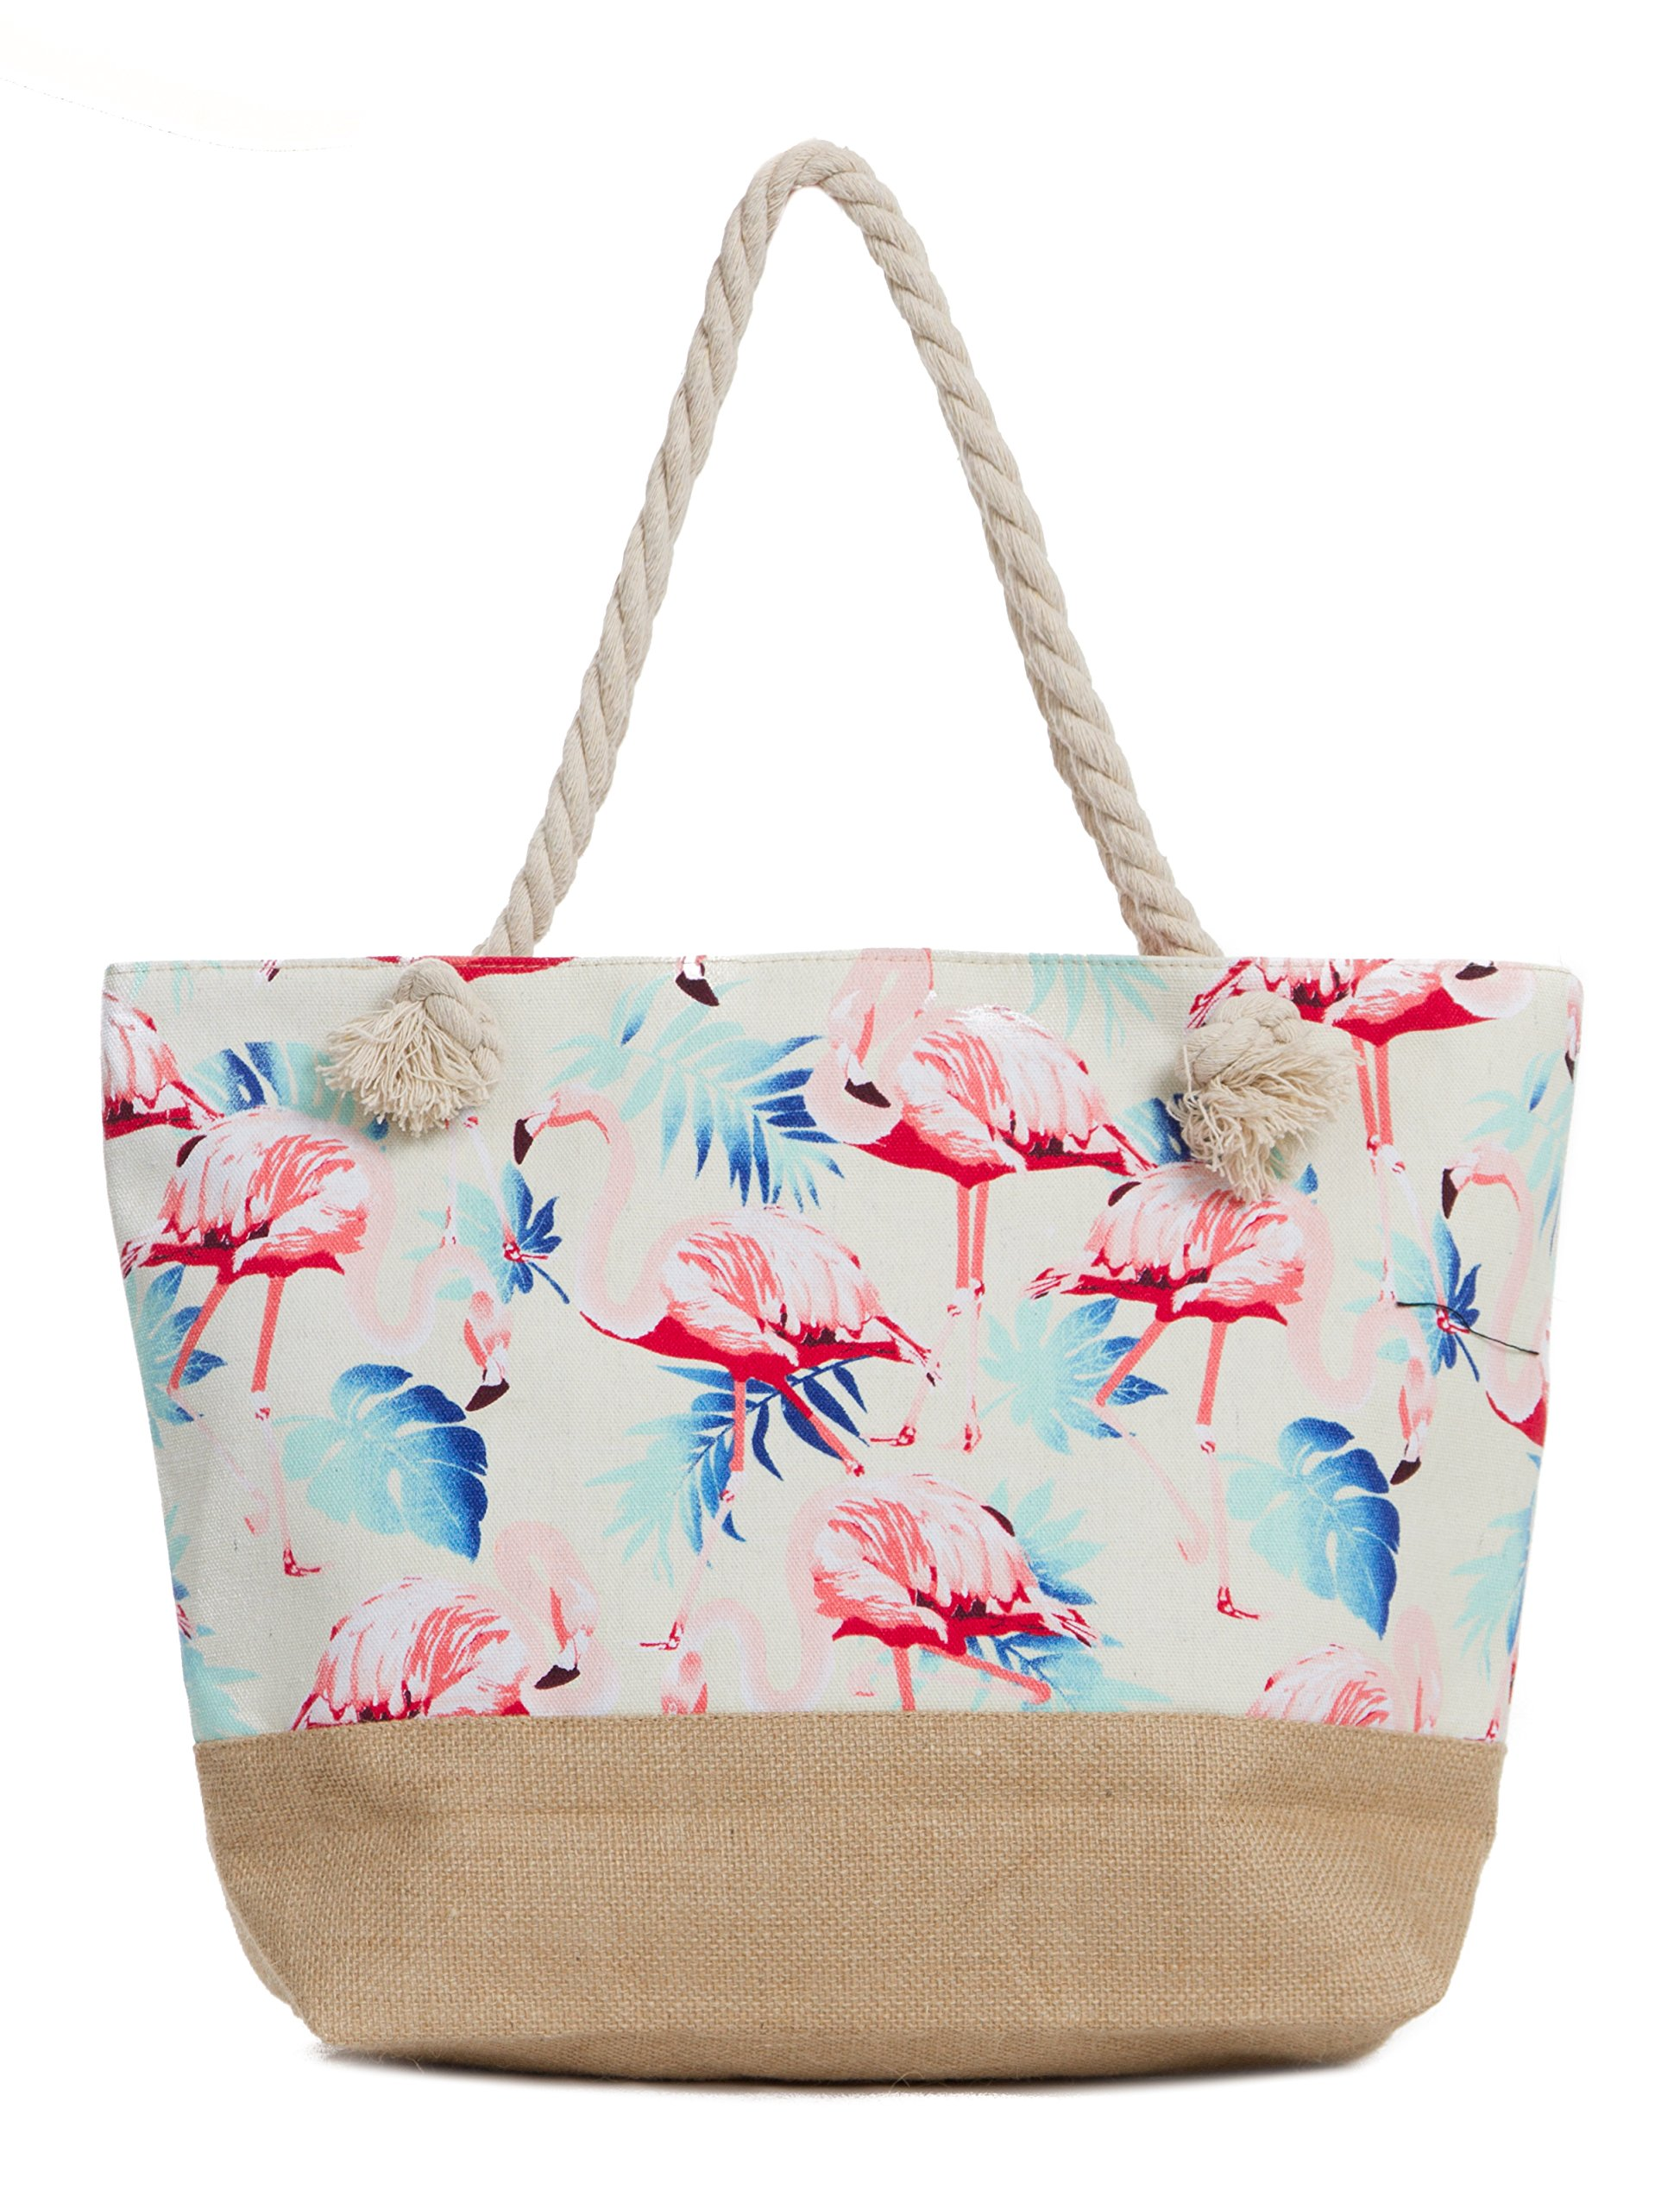 Leisureland Canvas Tote Beach Bag, Water Resistant Shoulder Tote Bag (L20 xH15 xW6, Flamingo White)